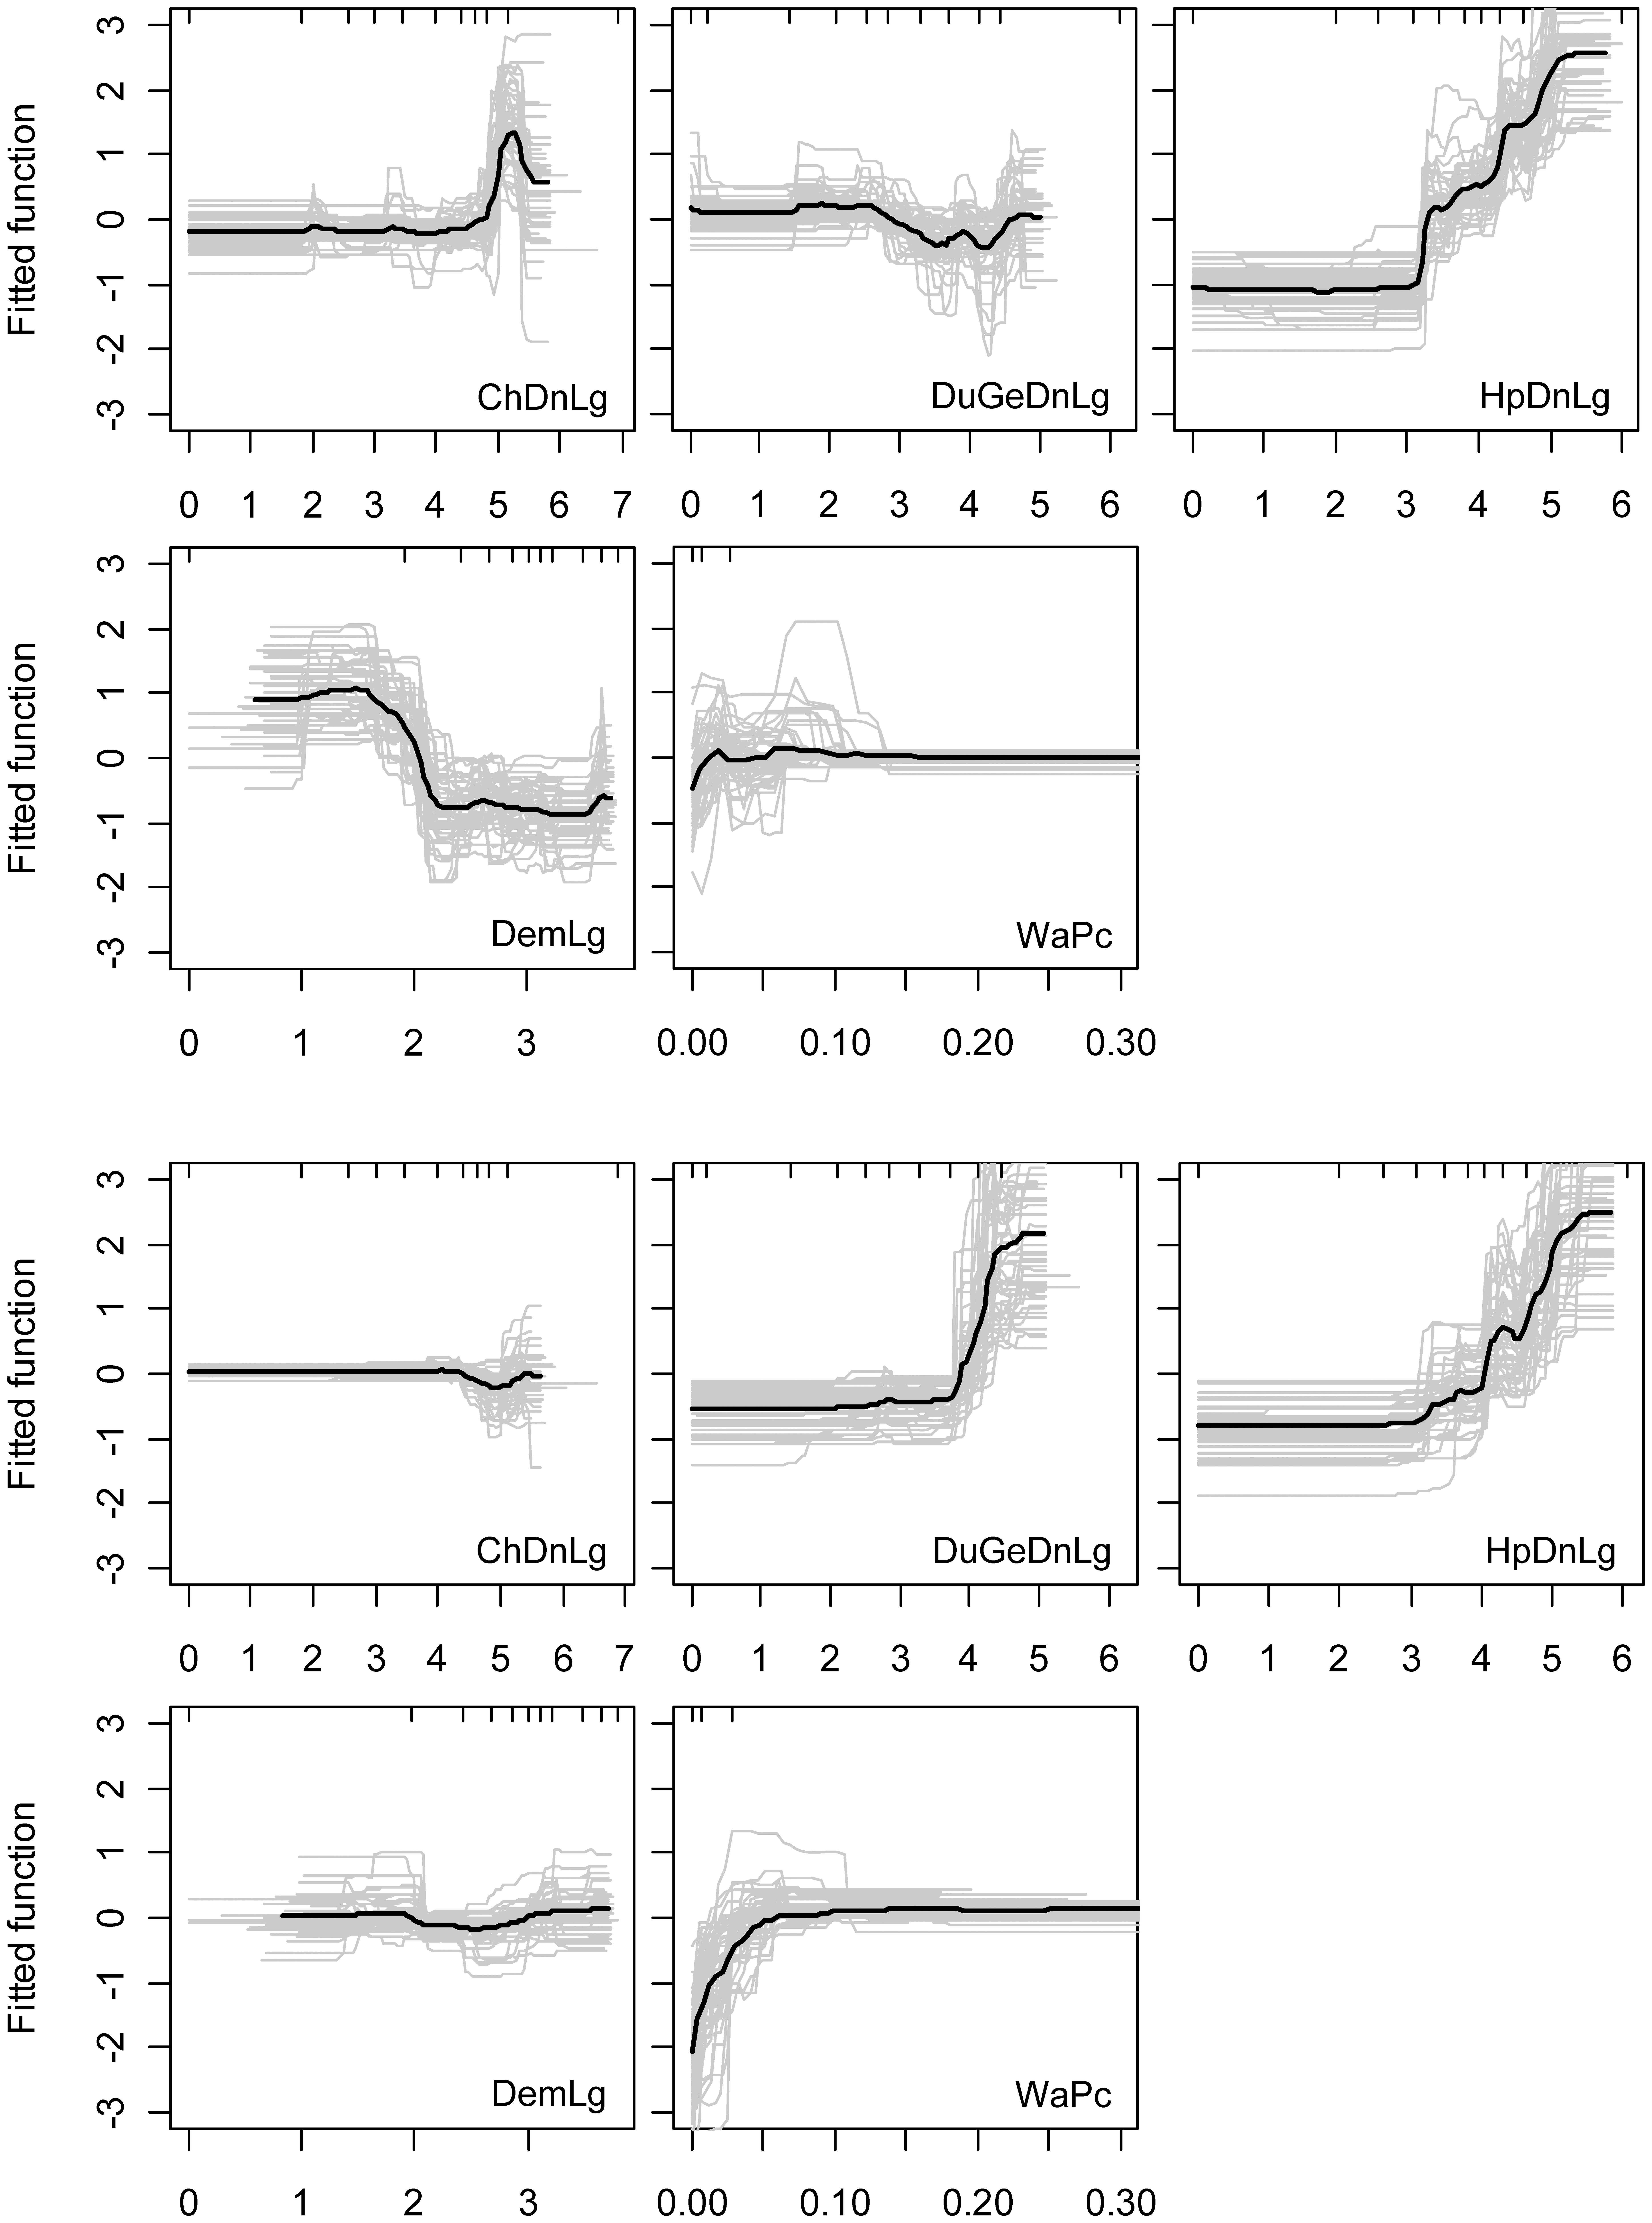 Relationship between risk factors and HPAI H5N1 risk function.